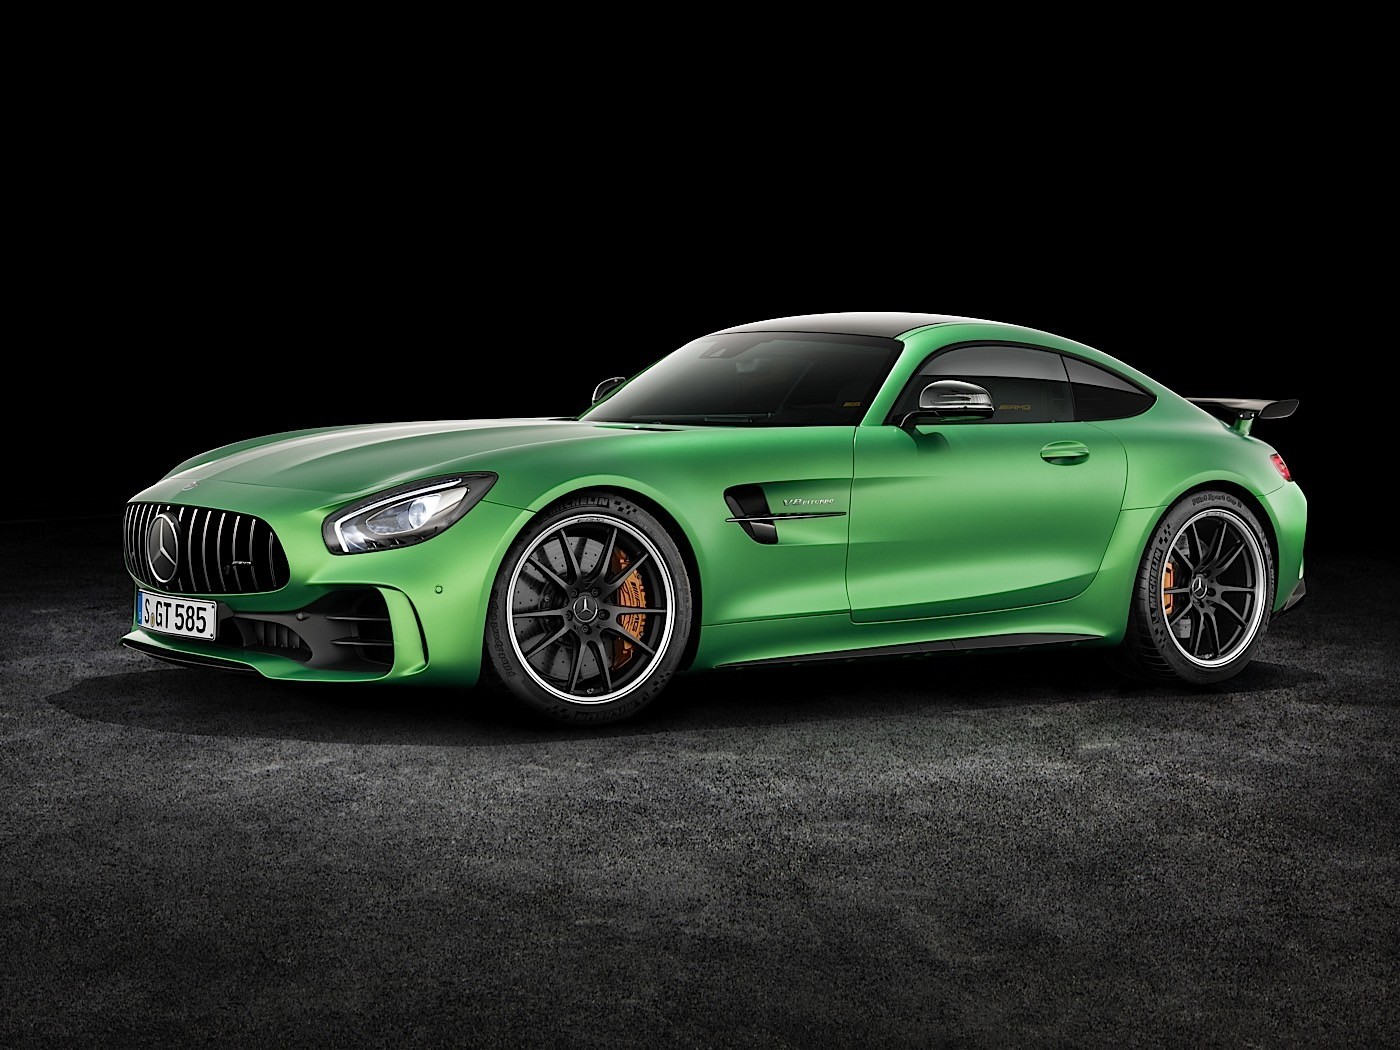 2017 mercedes amg gt r goes official with rear wheel steering autoevolution. Black Bedroom Furniture Sets. Home Design Ideas